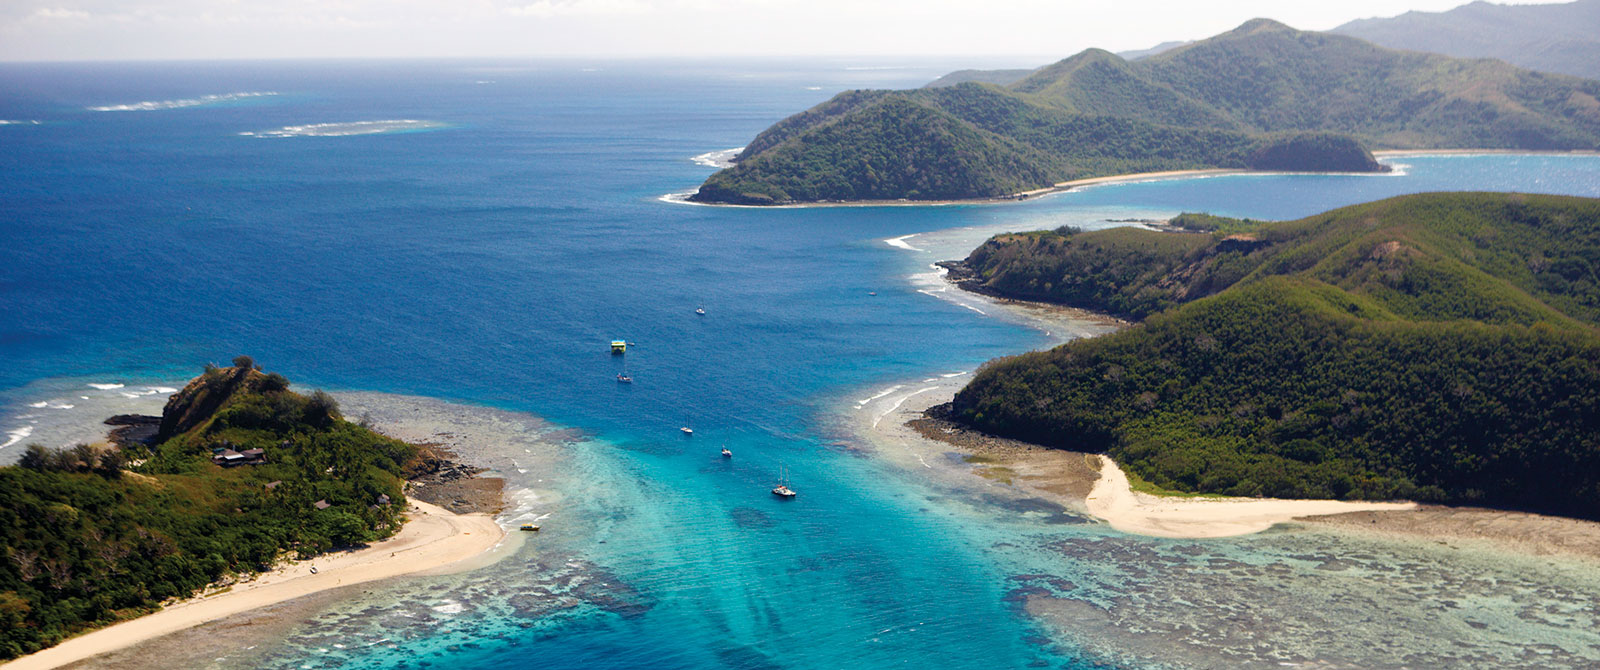 Yasawa Islands - Manta Ray Island Resort - Book Your Trip to Fiji - Fiji Travel Agency